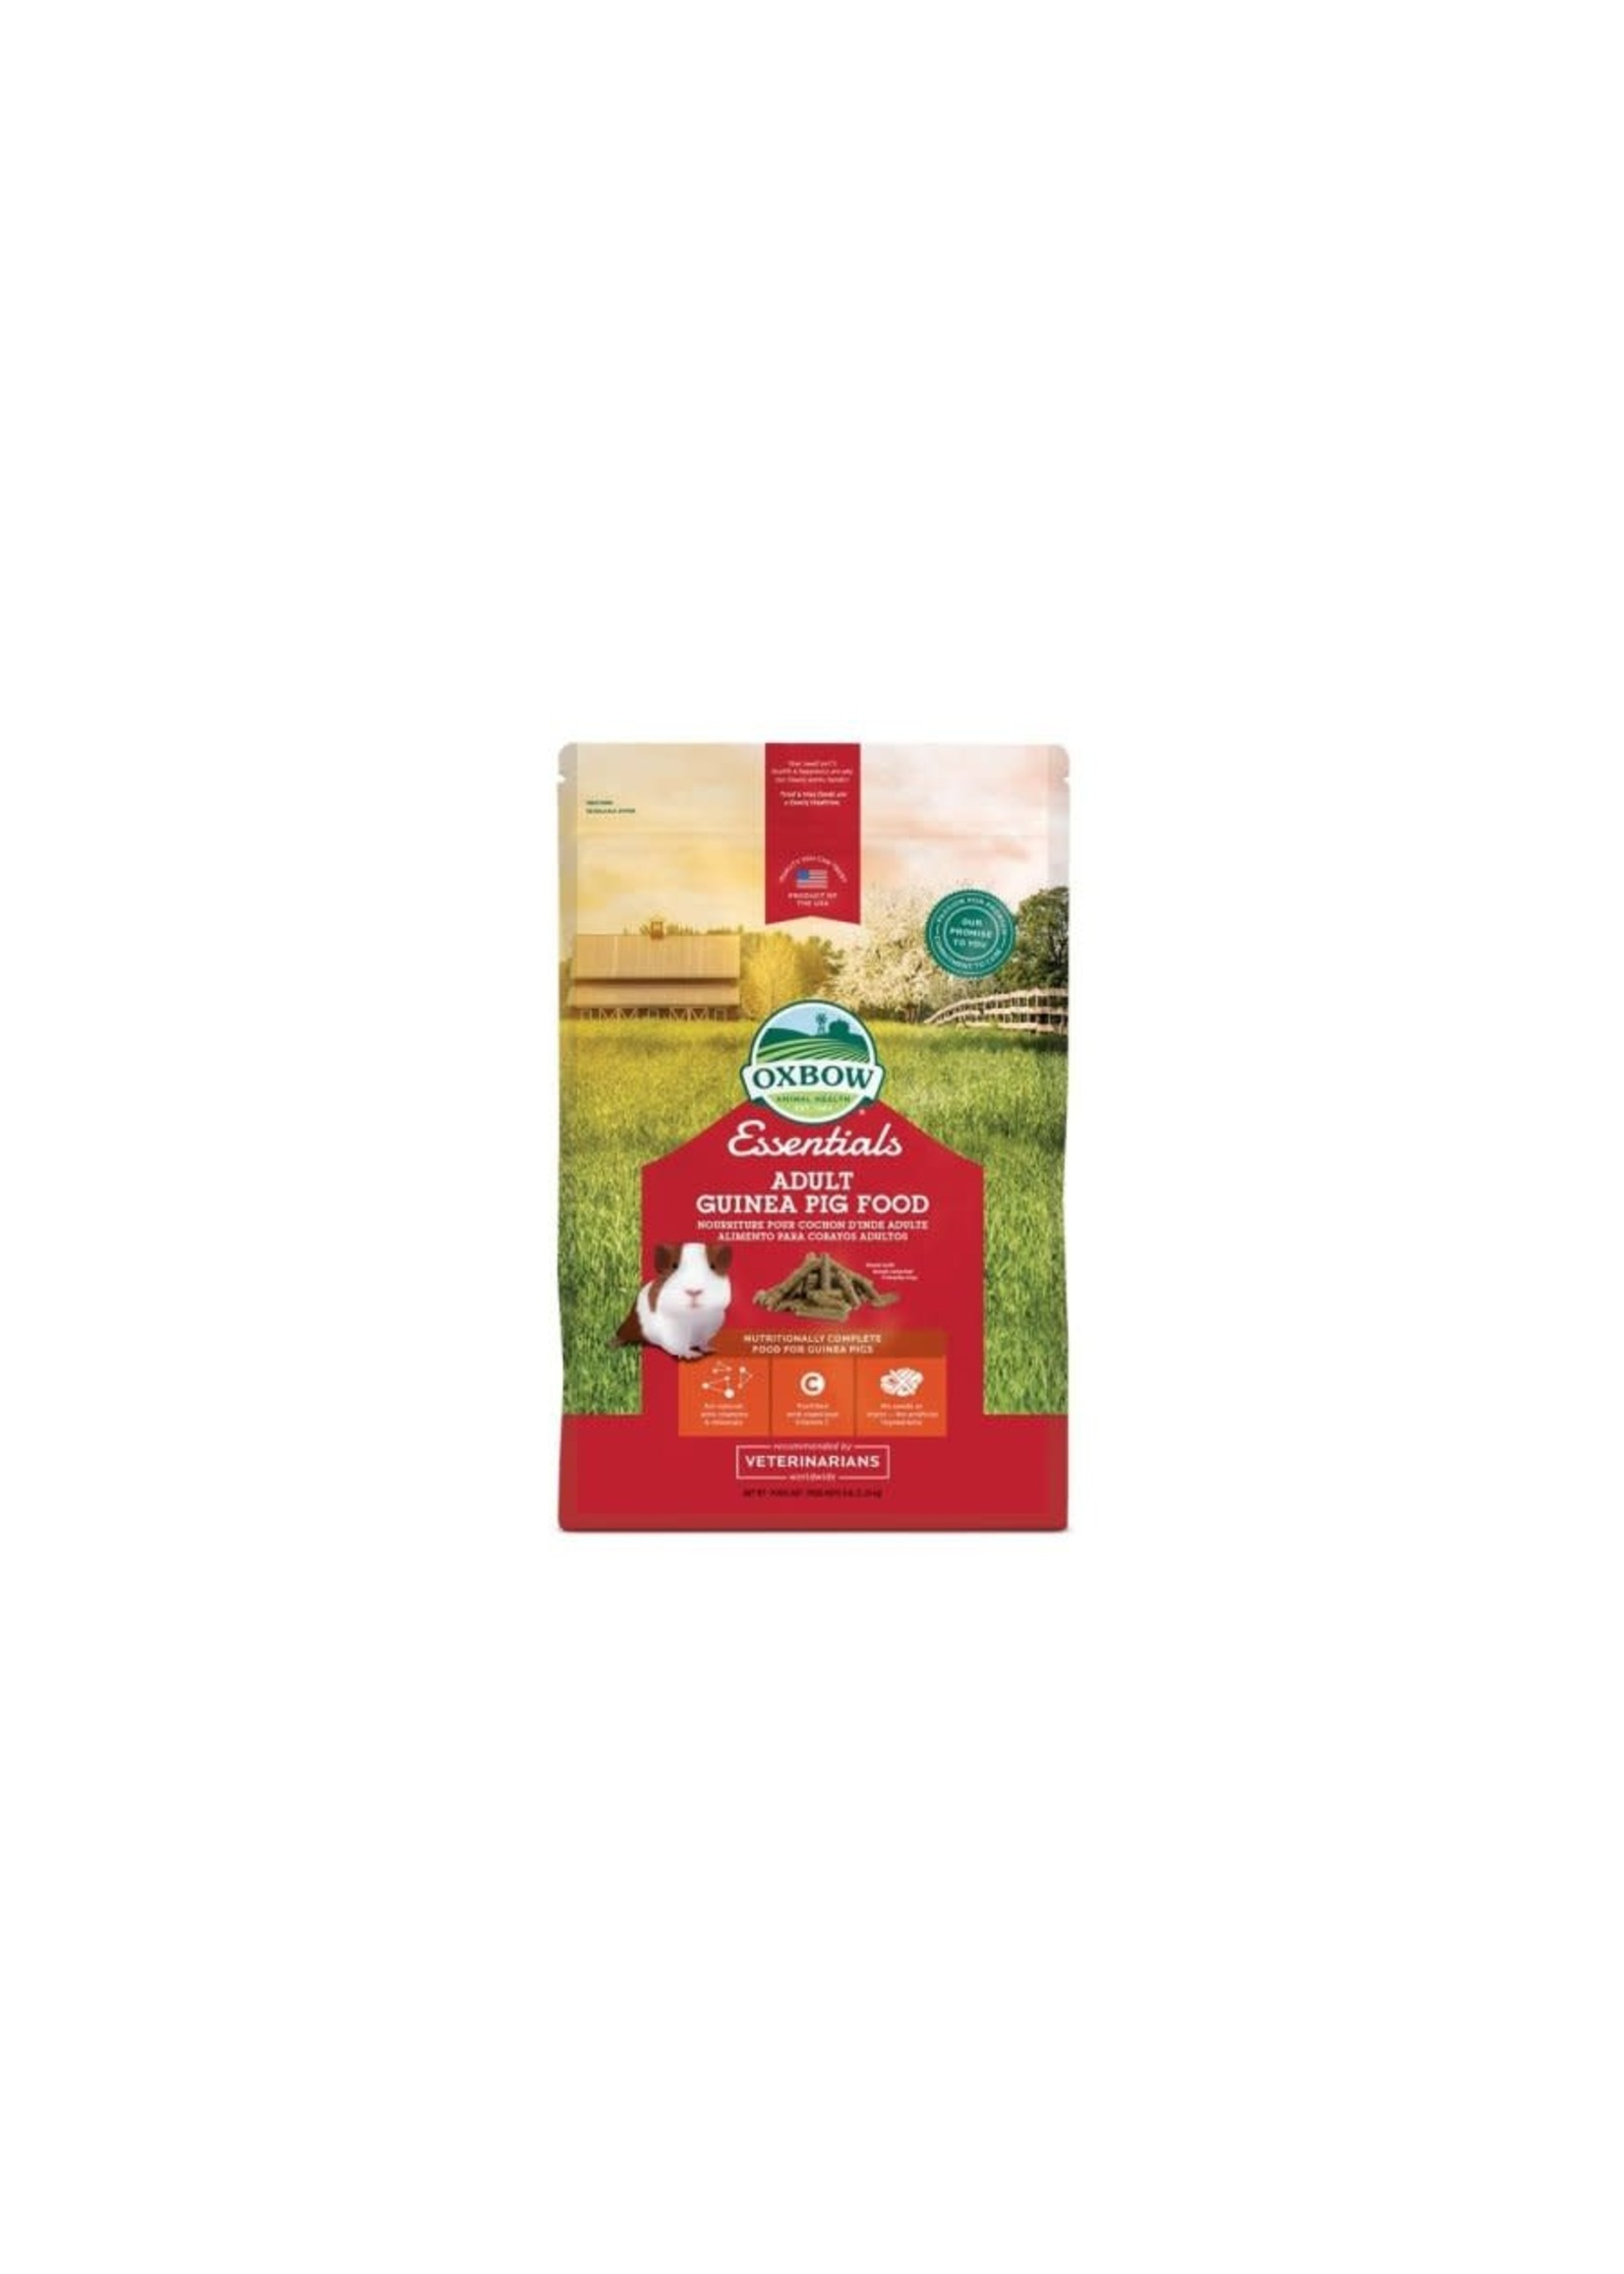 Oxbow Oxbow rongeur nourriture cochon d'Inde adulte 5 lbs